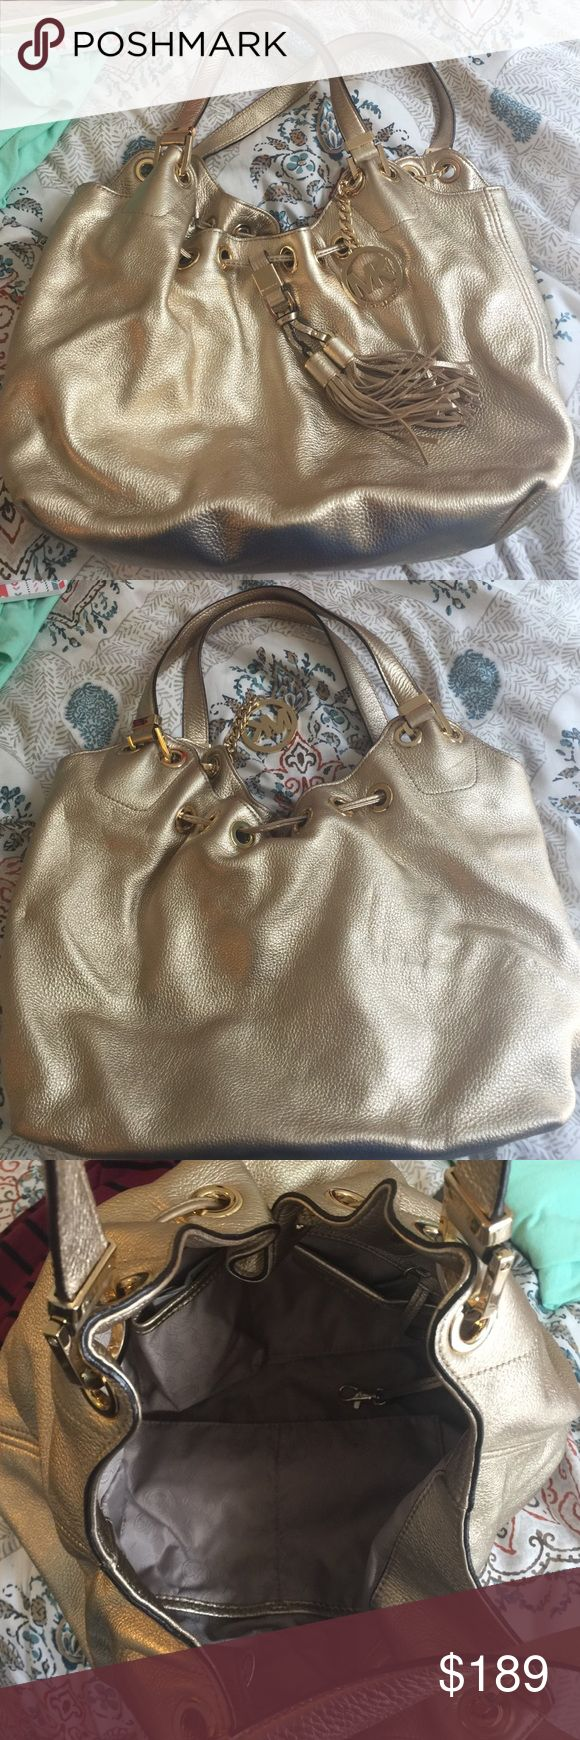 Gold Michael Kors Purse 2014 Used but in good shape, clean with original tags and some original paper in the pockets Michael Kors Bags Shoulder Bags